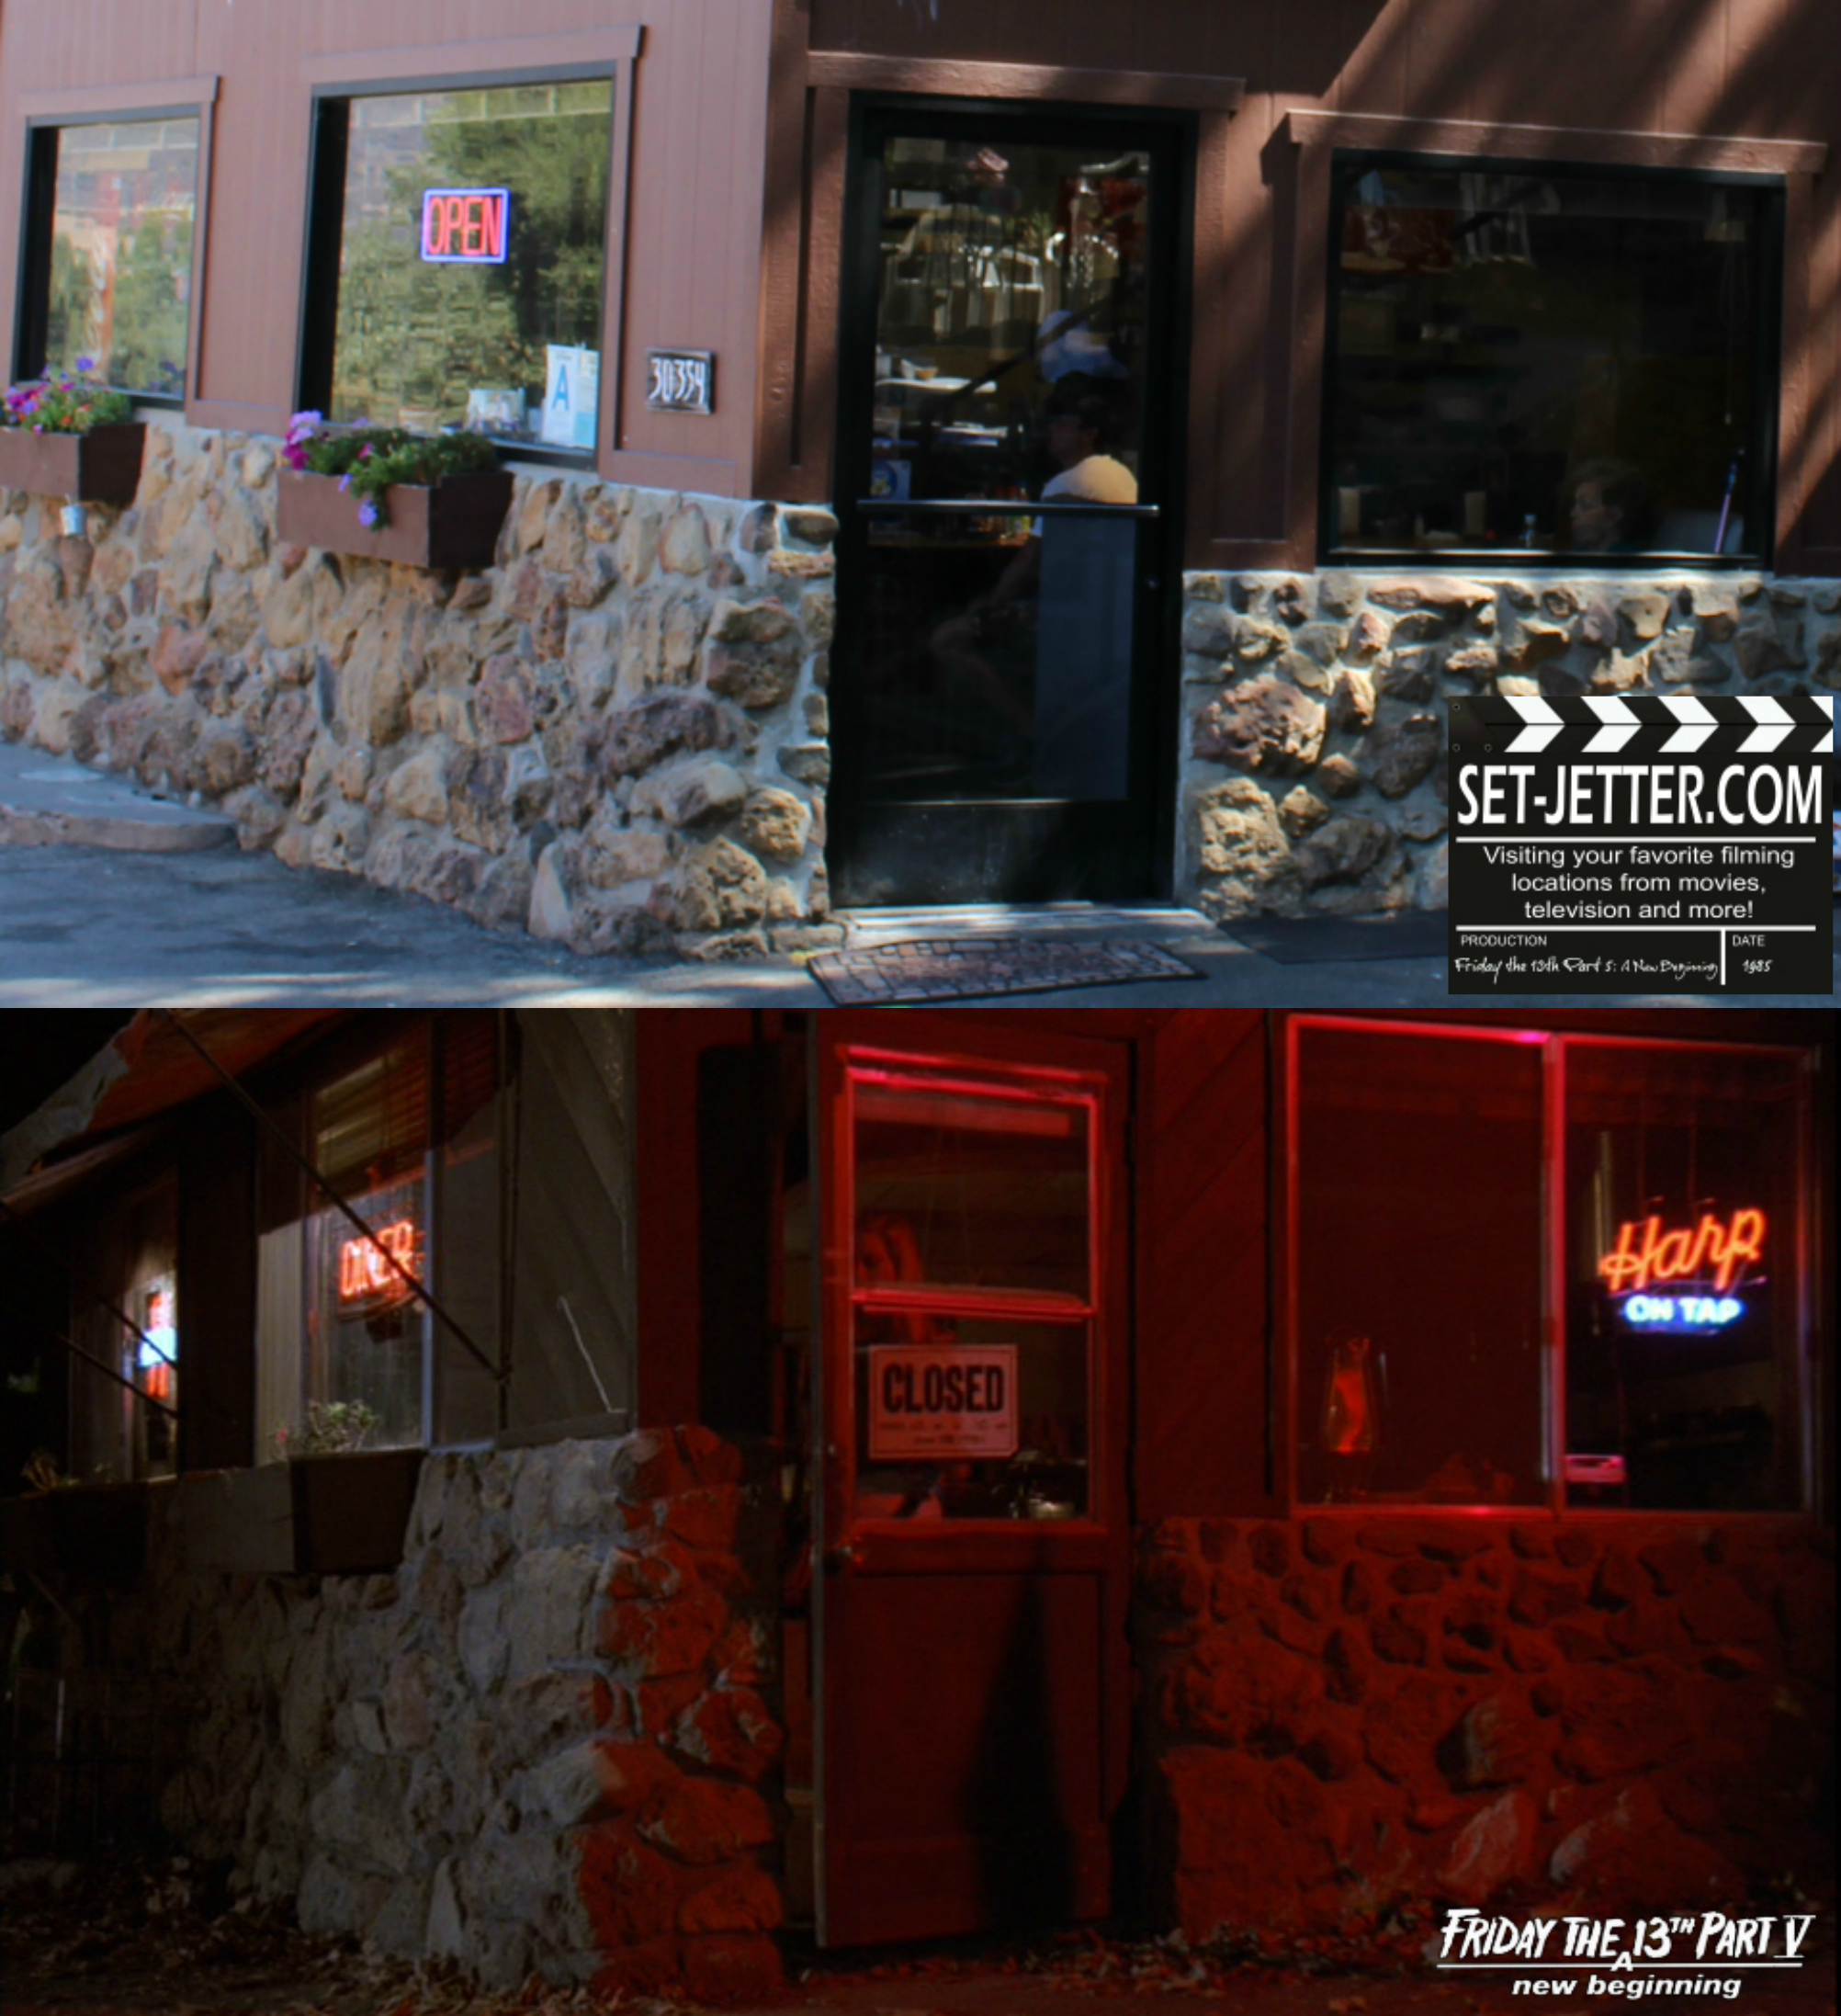 Friday the 13th Part V comparison 14.jpg